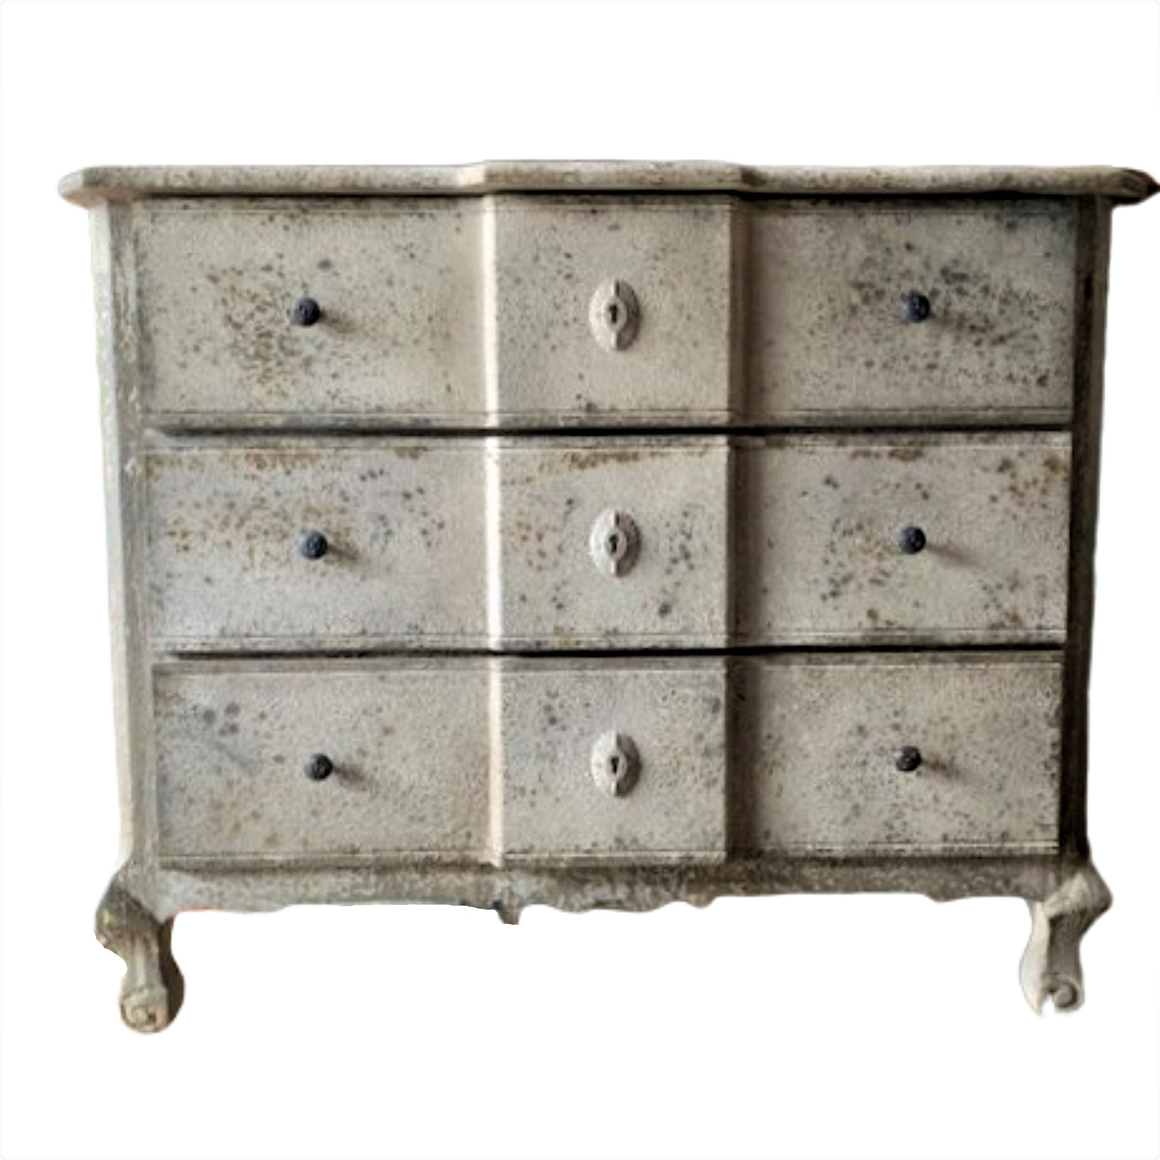 CHEST OF 3 DRAWERS / WOOD / DISTRESSED PATINA